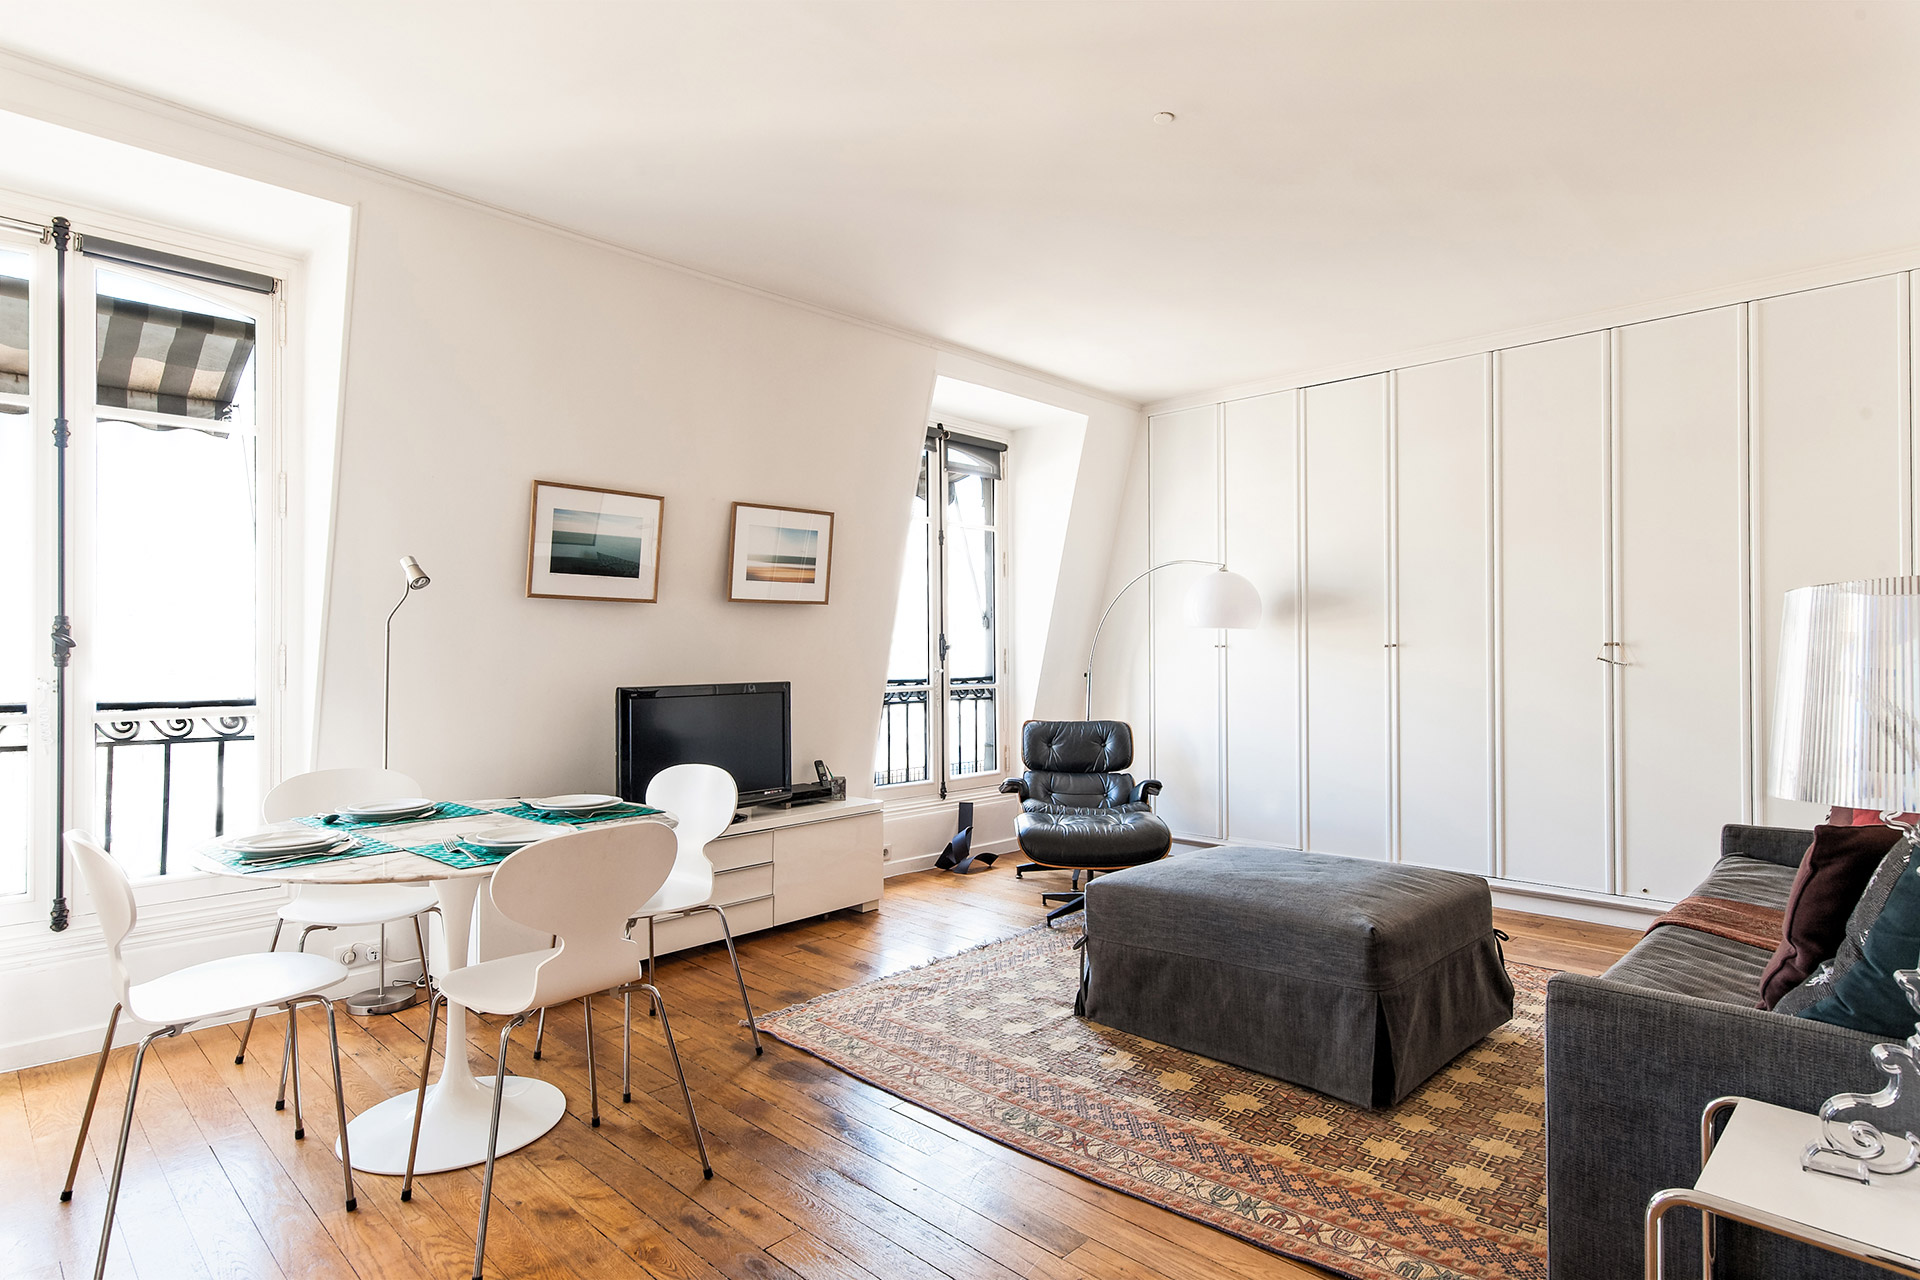 Find 1 bedroom apartment in paris france paris perfect sale